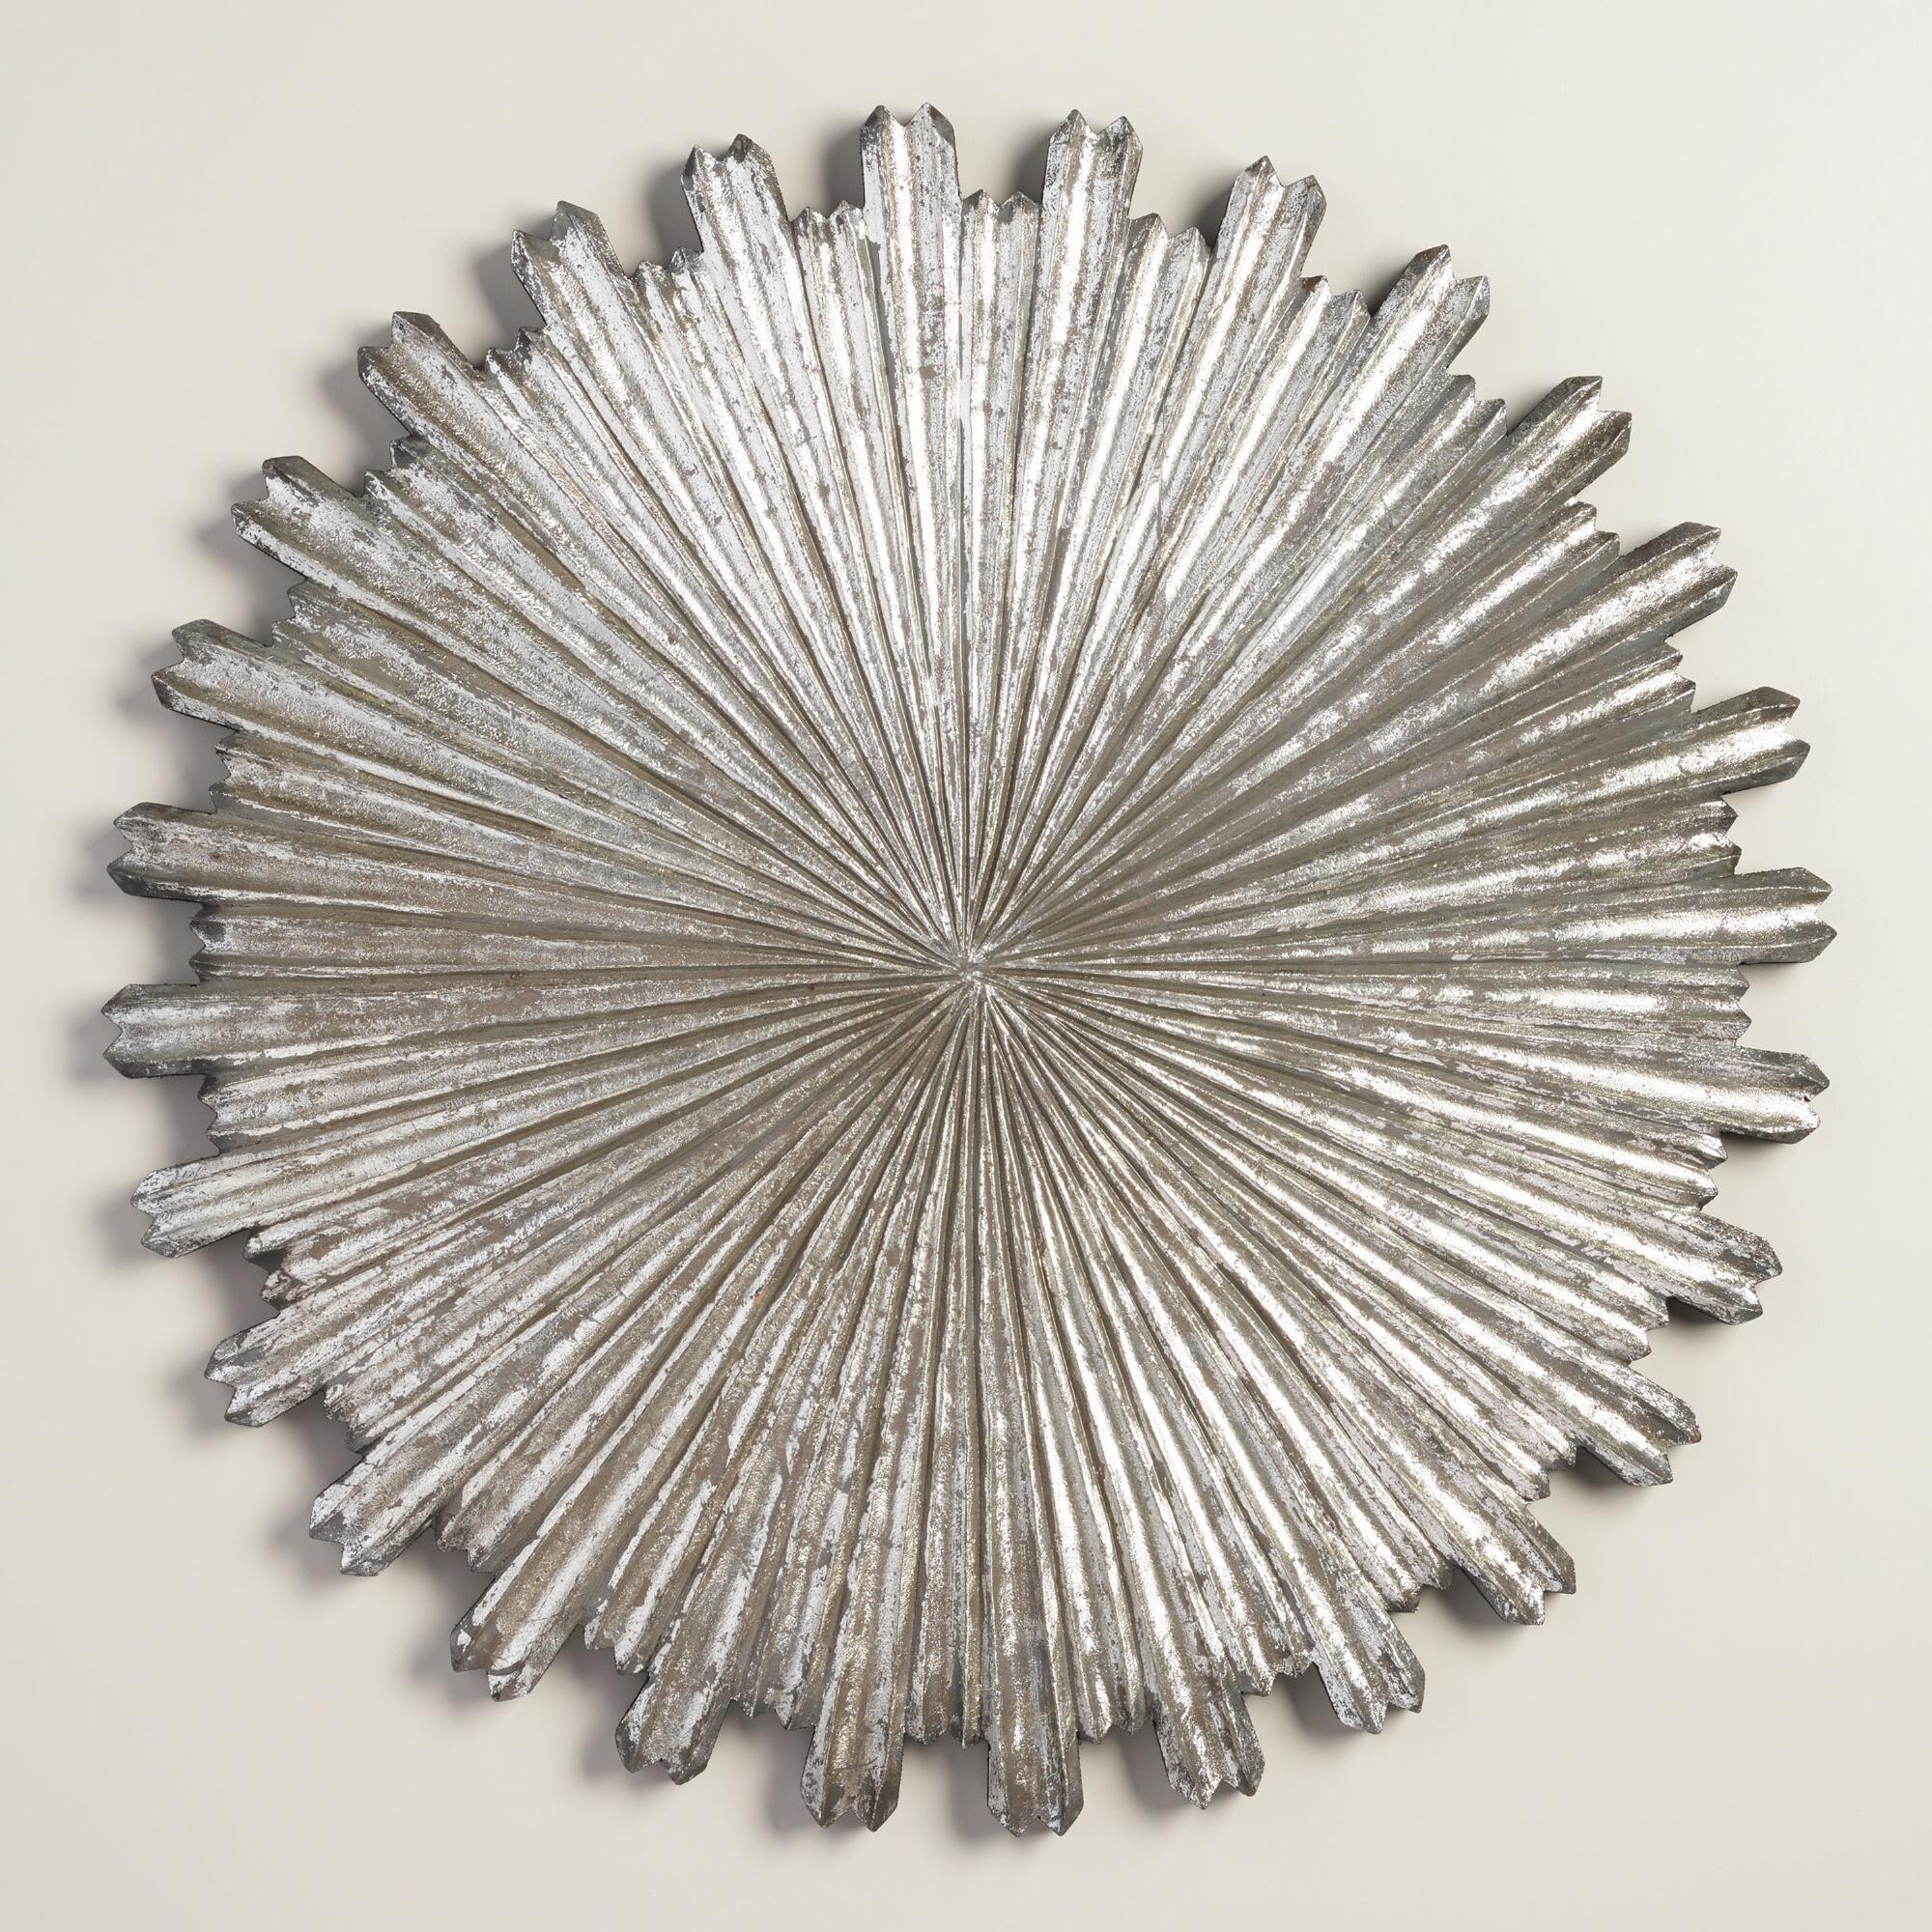 Wall Art Designs: Sunburst Wall Art Twig Sunburst Wall Decor Style With Jeweled Metal Wall Art (Image 14 of 20)